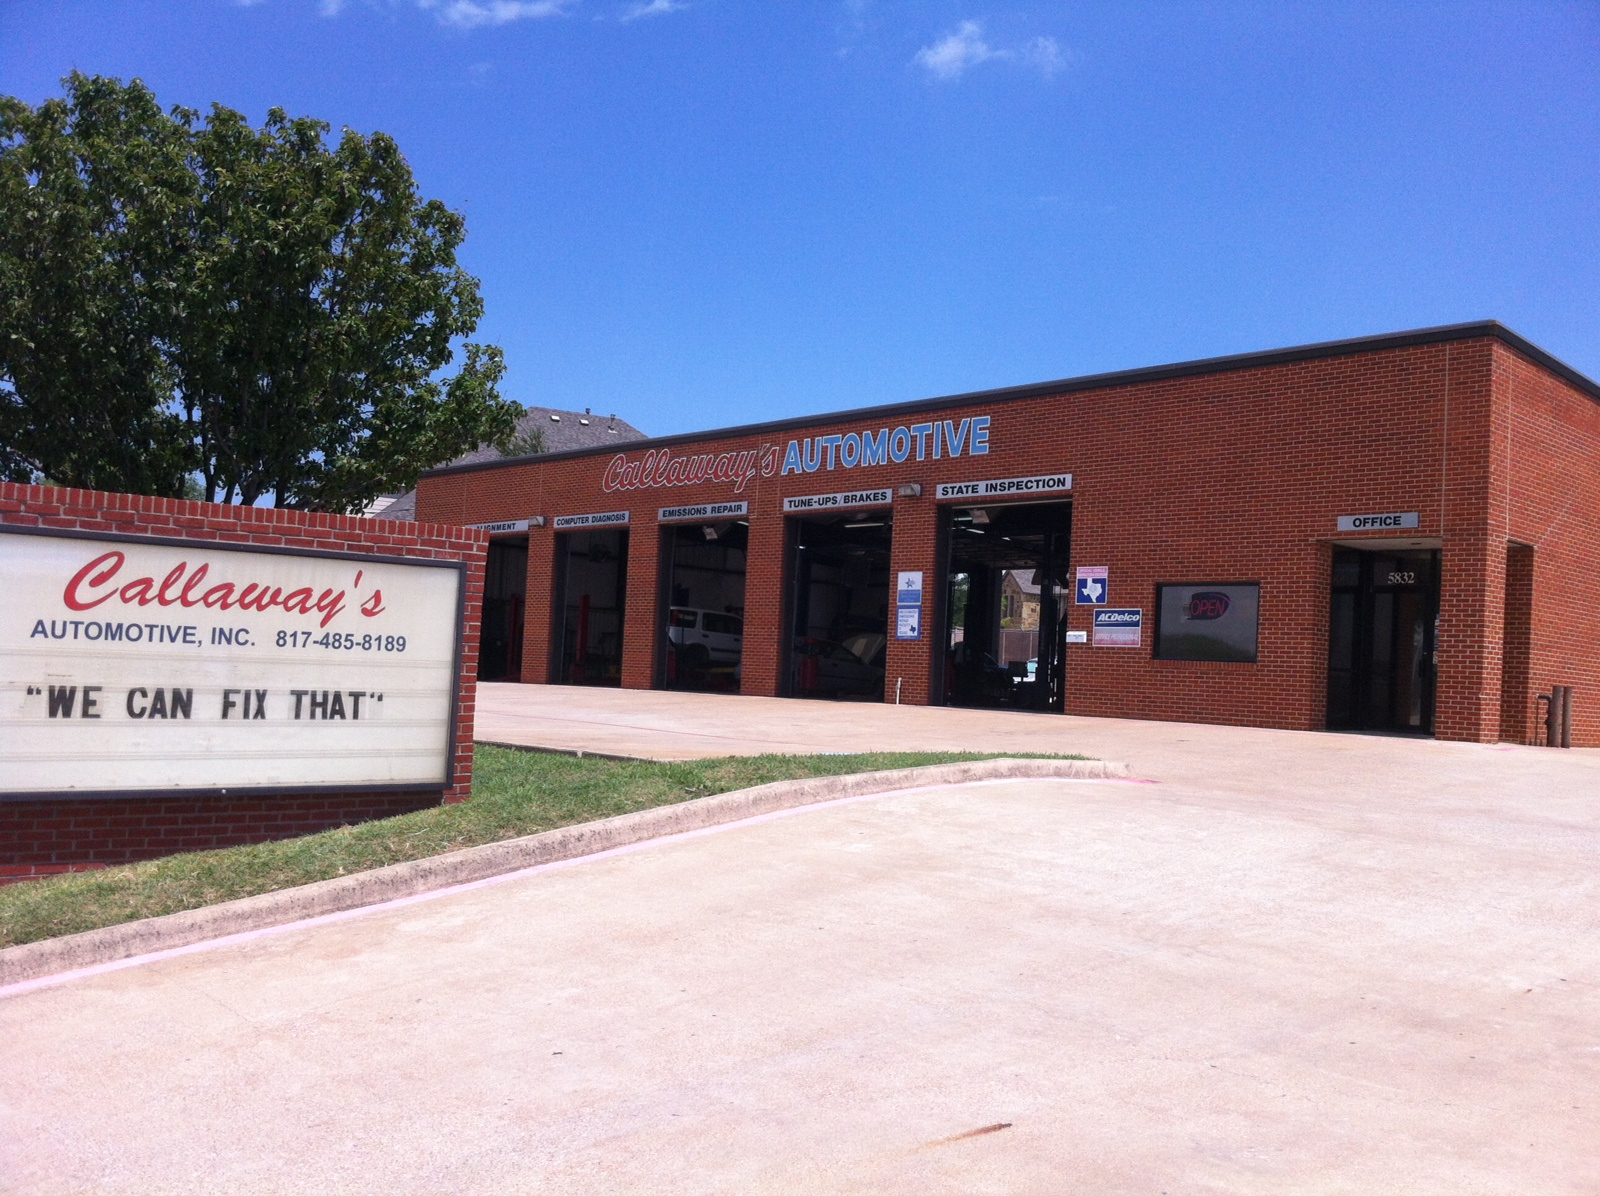 Serving quality and trustworthy auto repair since 1982, including: Colleyville, Hurst, Bedford, NRH, Watauga, Keller, Grapevine, and Ft Worth.